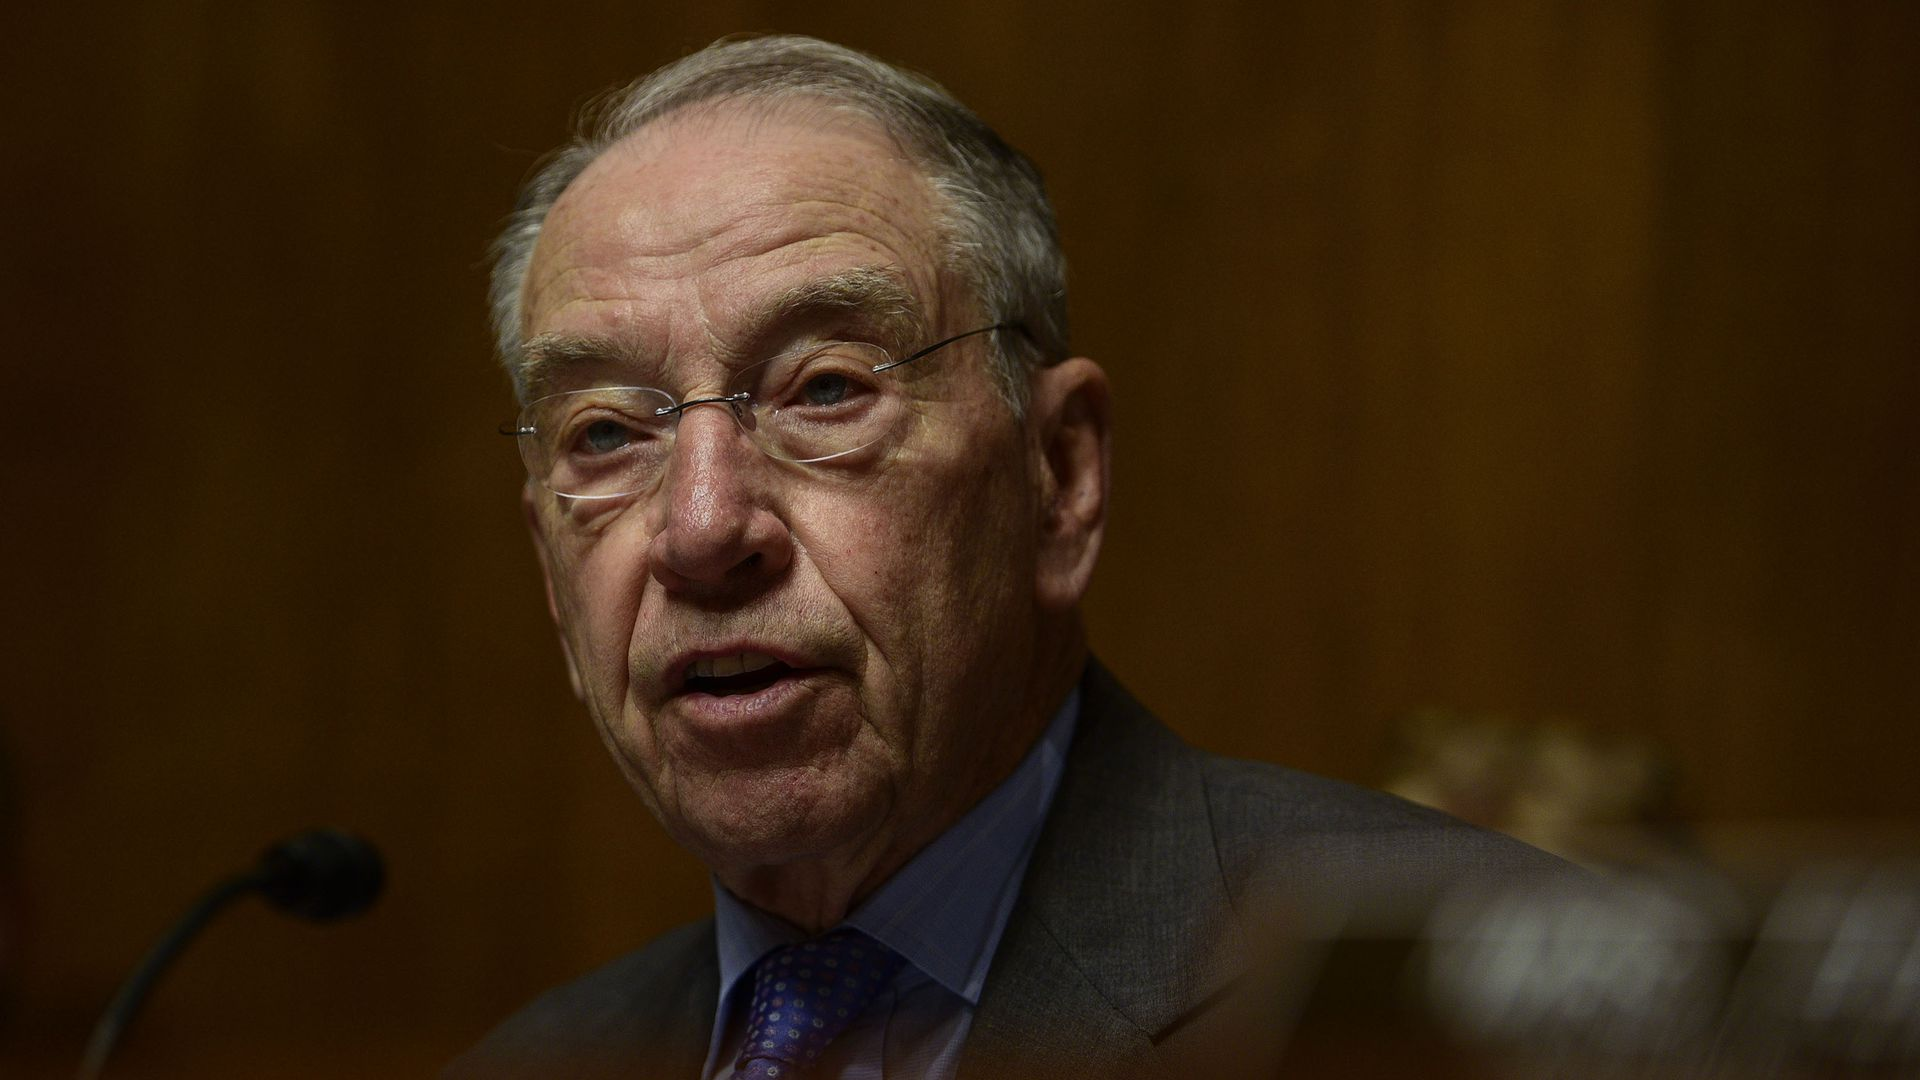 Sen. Chuck Grassley (R-IA), chairman of the Senate Judiciary Committee. Photo: Leigh Vogel/WireImage